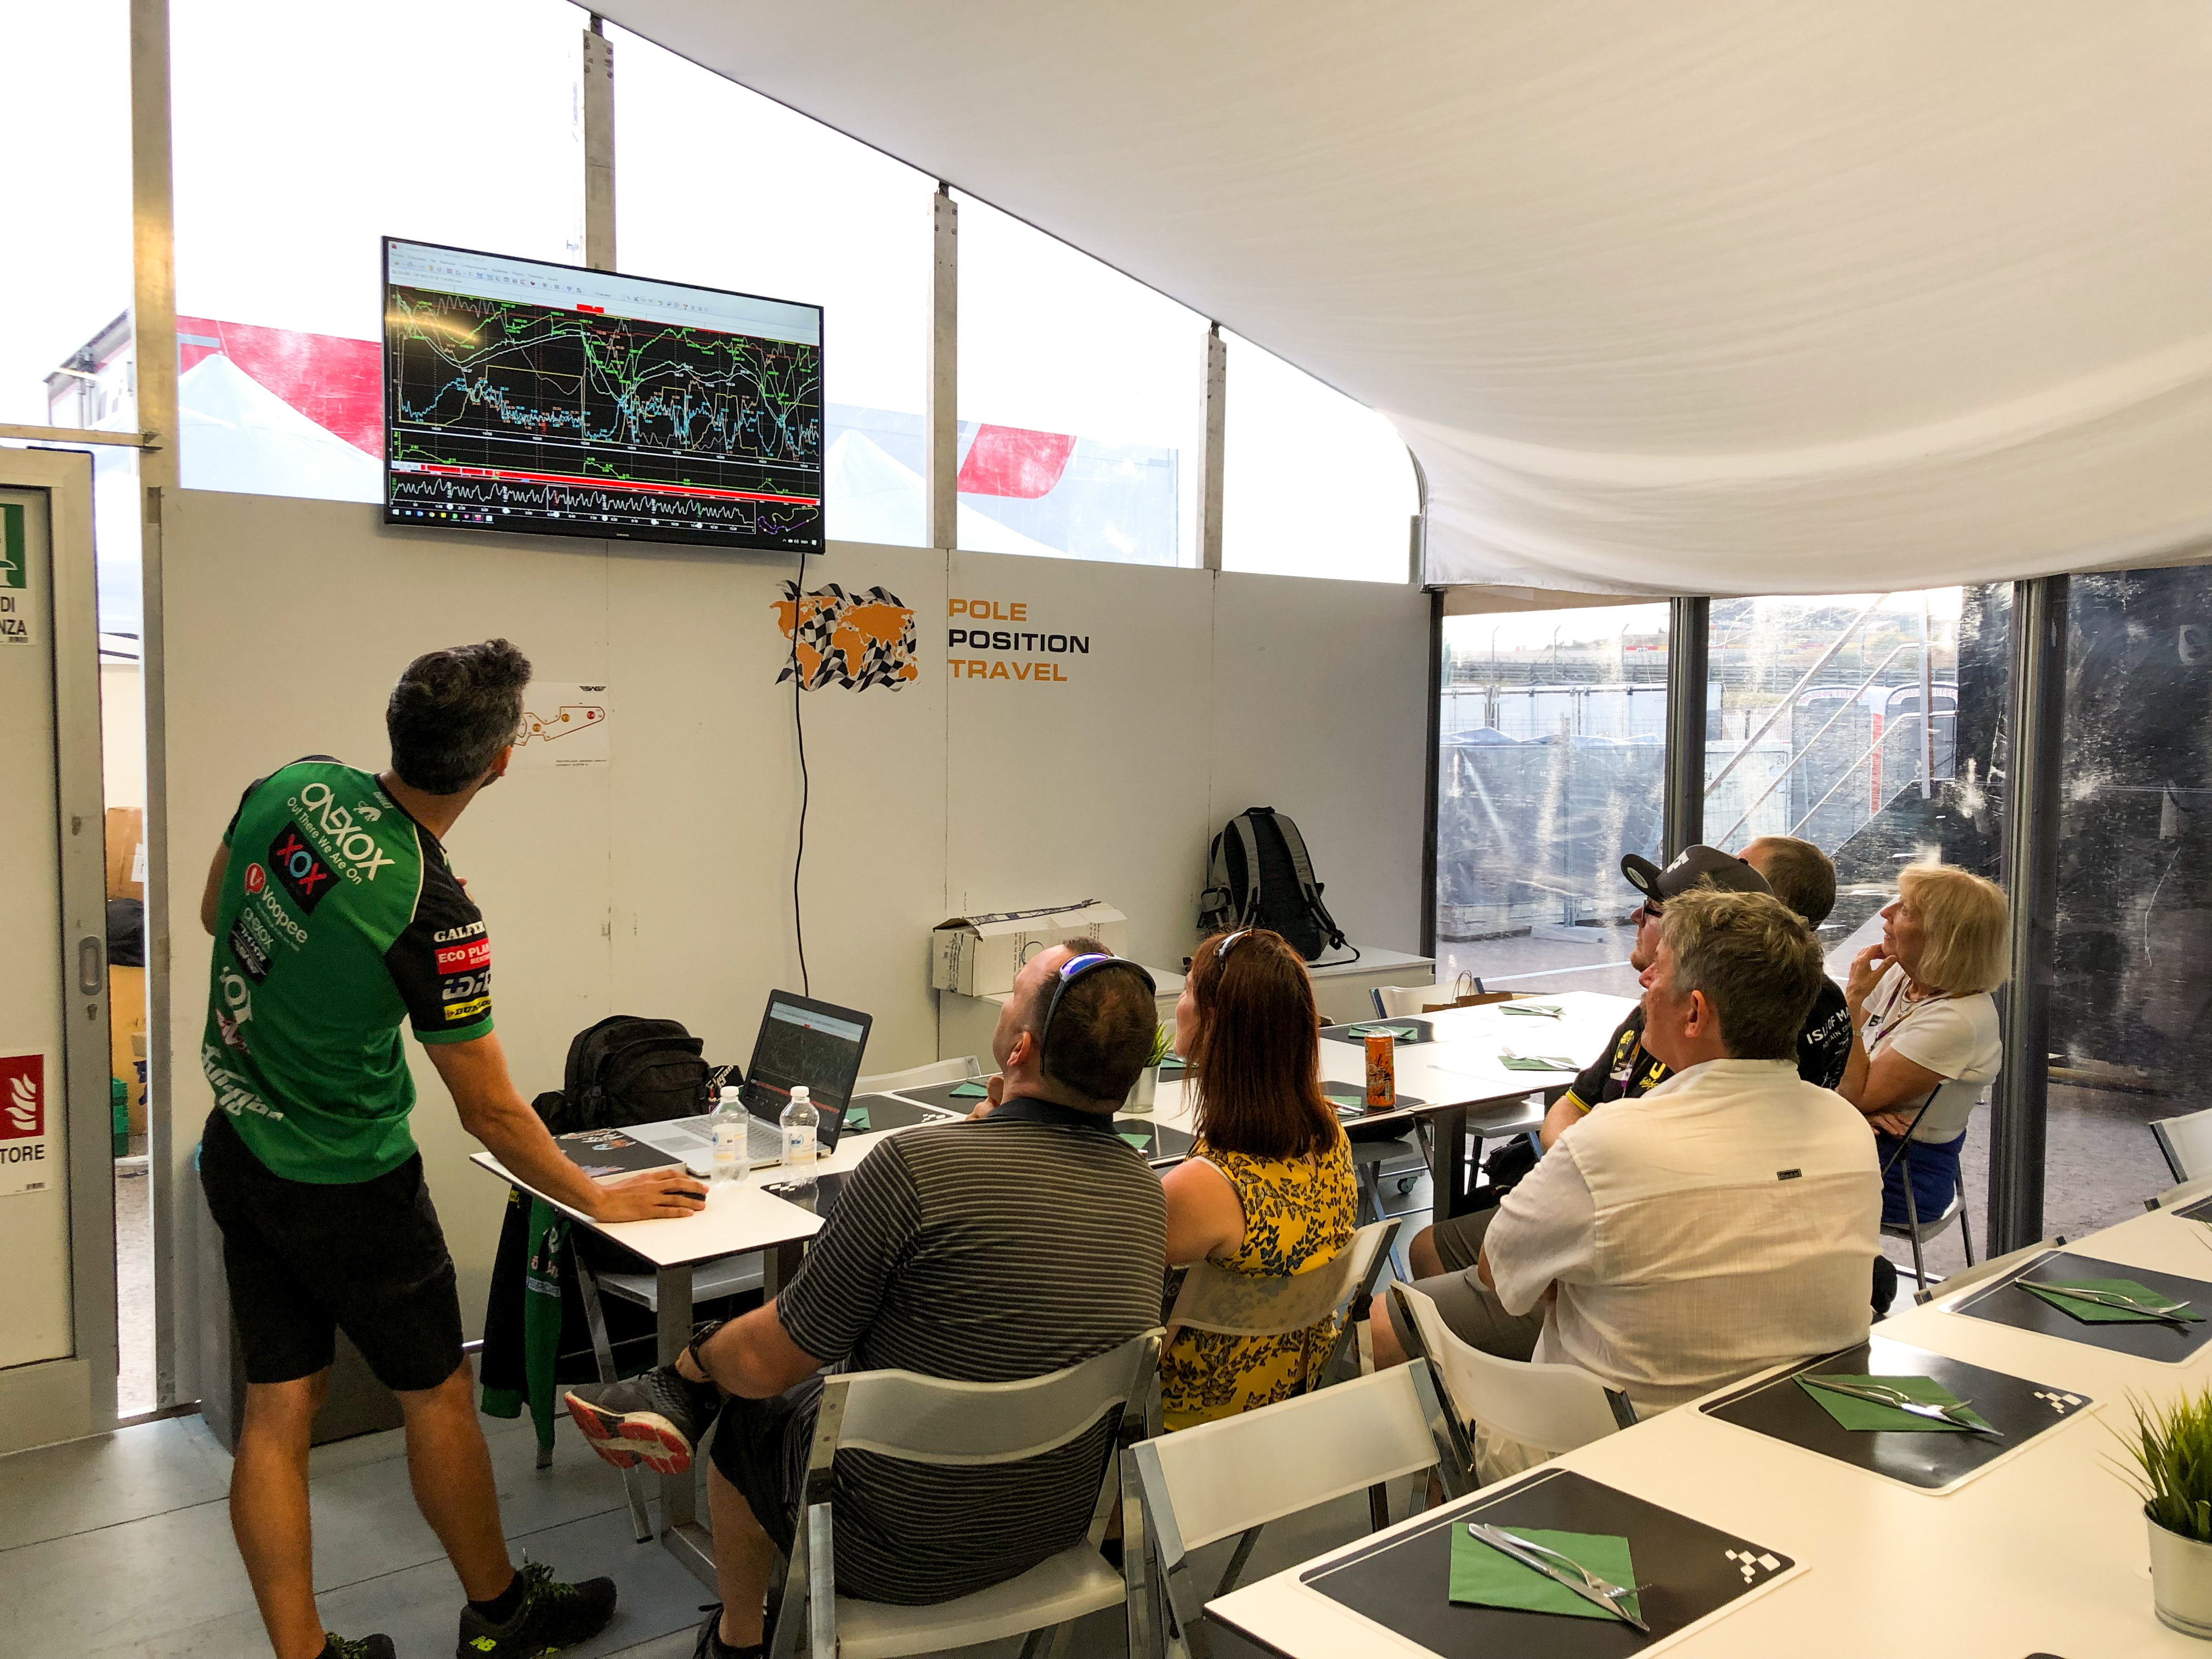 Talk from chief mechanic of Moto2 team showing us how to read the telemetry data